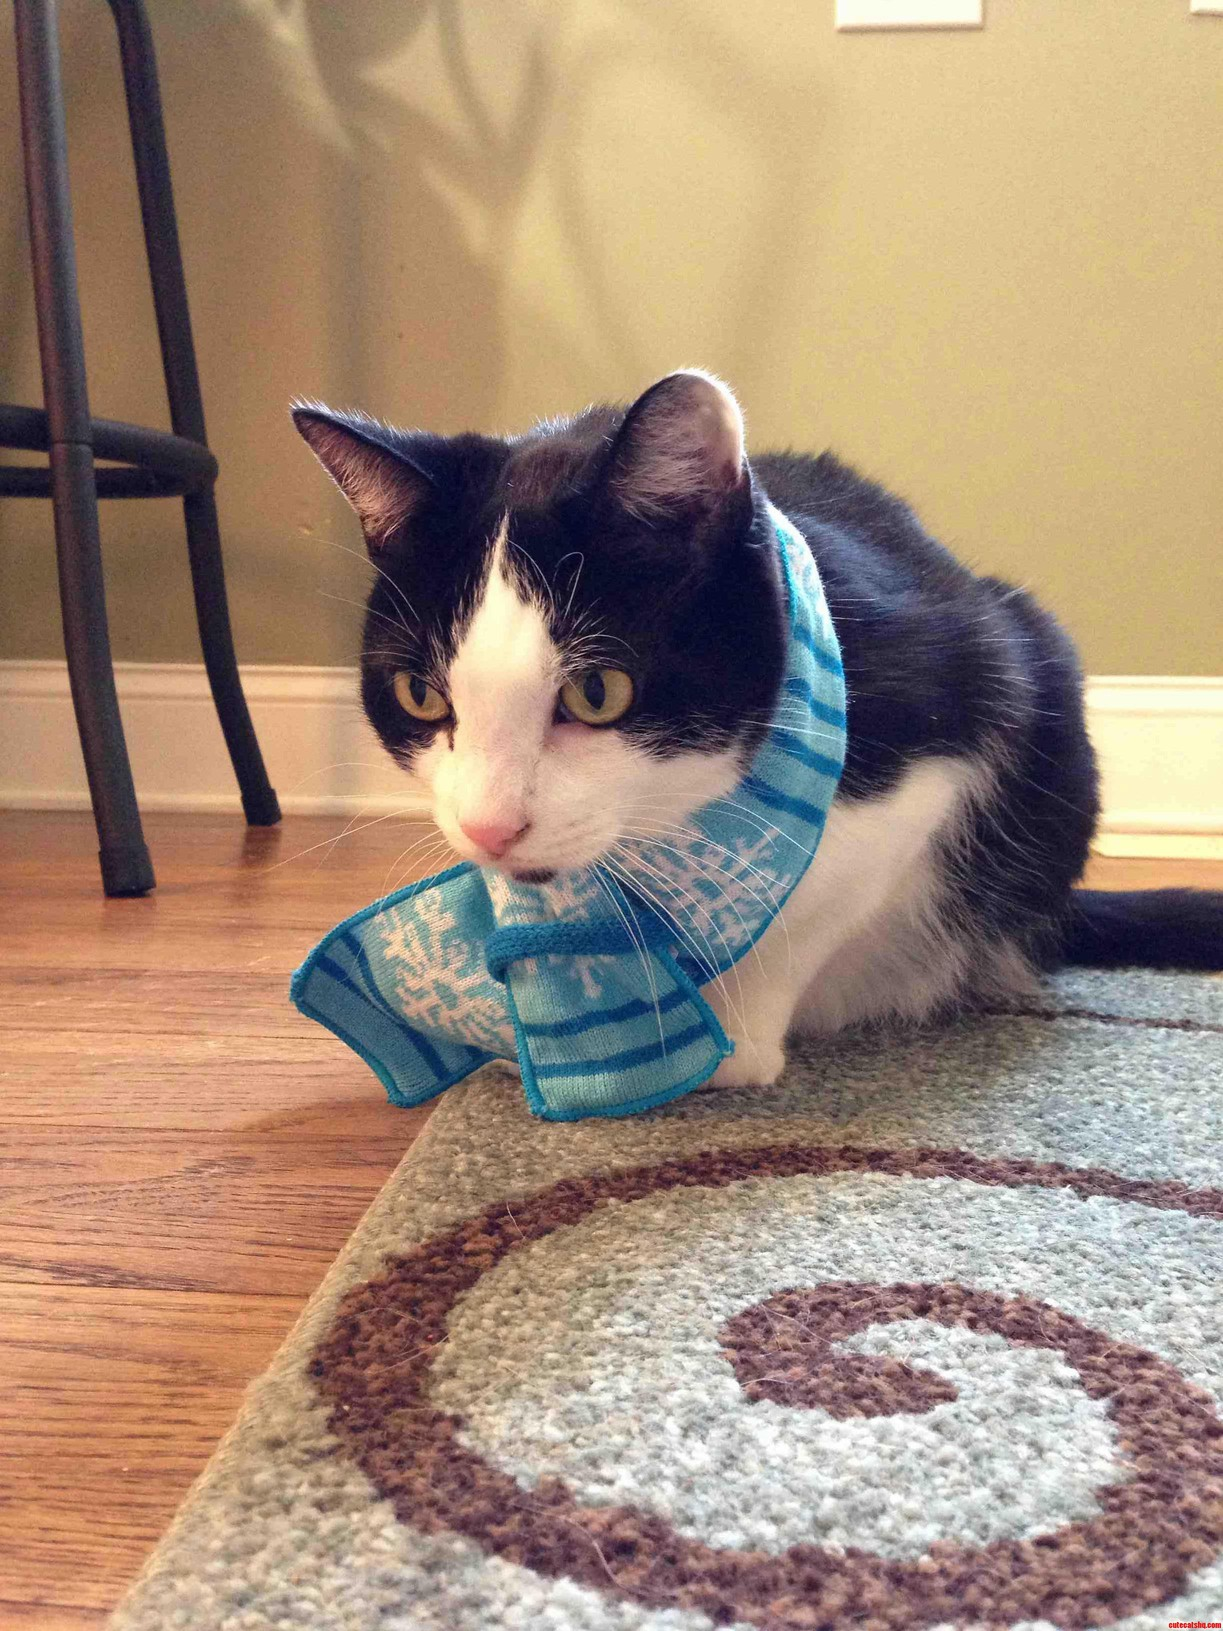 Just My Cat Wearing A Scarf.